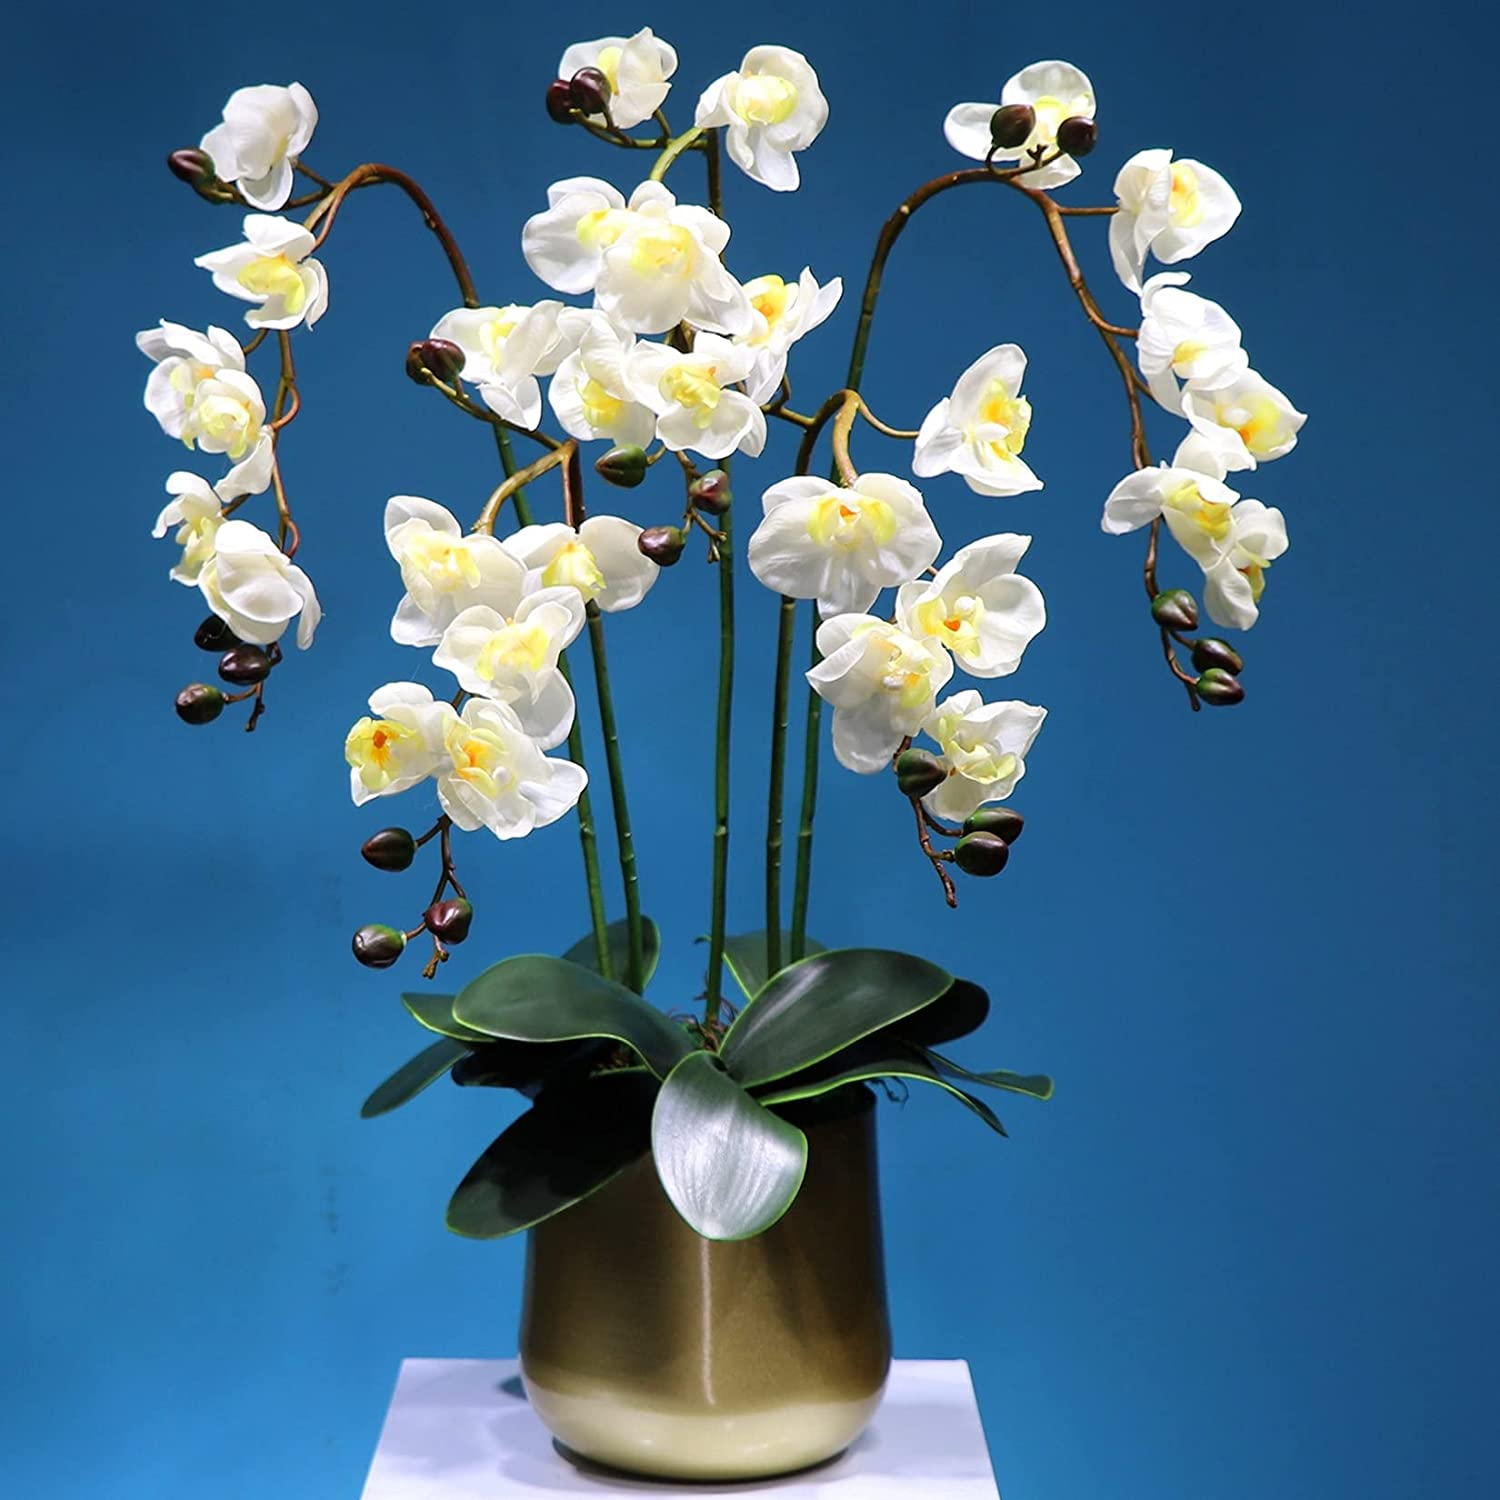 Quisilife Genuine Free Shipping Artificial SALENEW very popular! Orchid Flower P Set Stems Bonsai